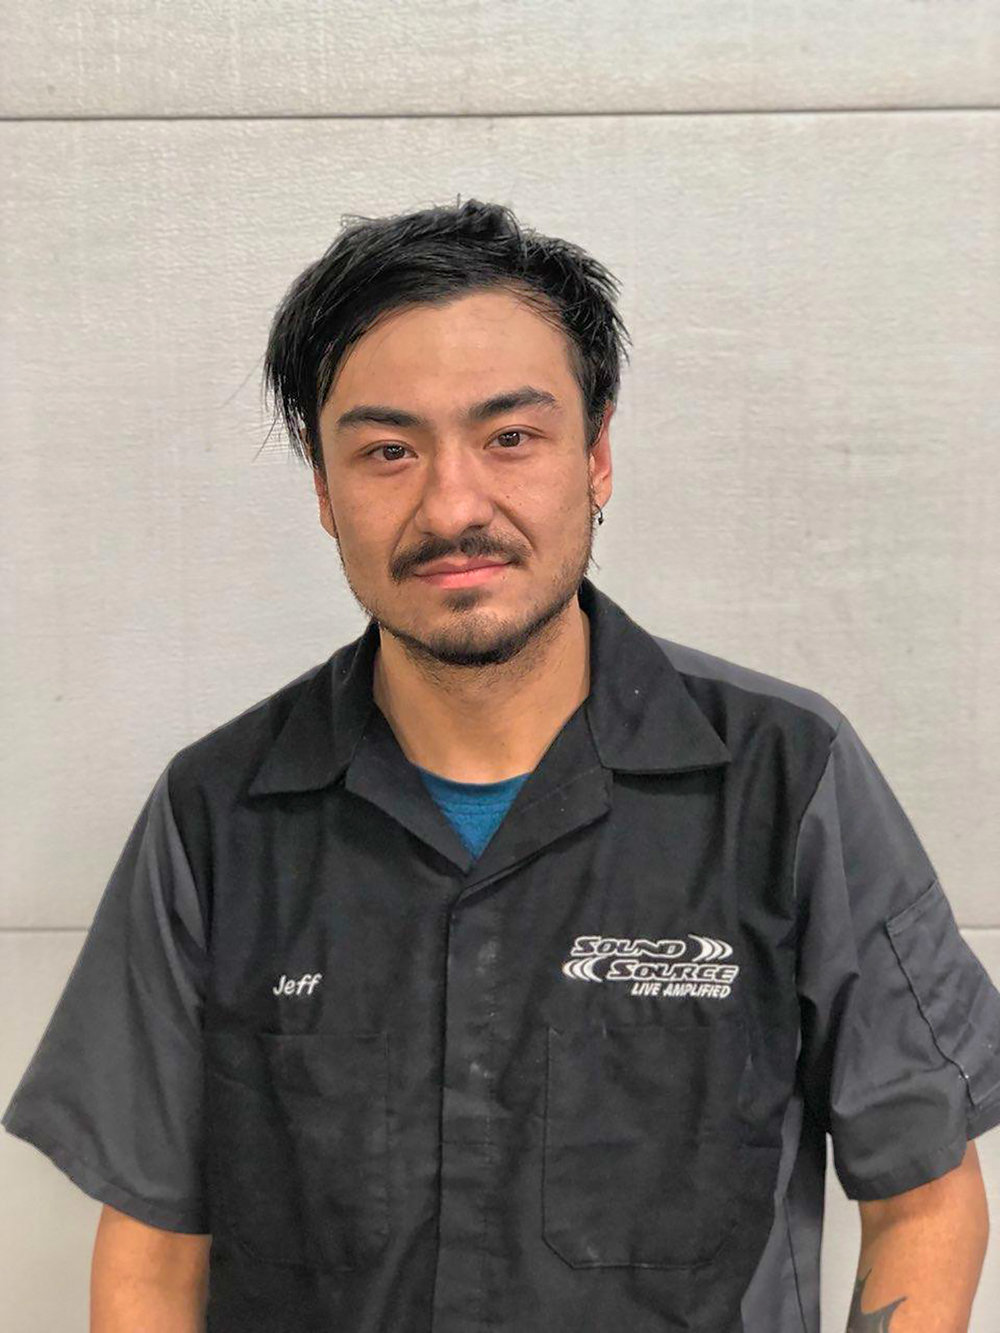 Jeff Damewood - Jeff has been with Sound Source for over 6 years. He graduated from Idaho State University auto-body class in 2010. Jeff is one of our best technicians that we have! He is also, one of our salesmen up front! He is great with installs and customers!